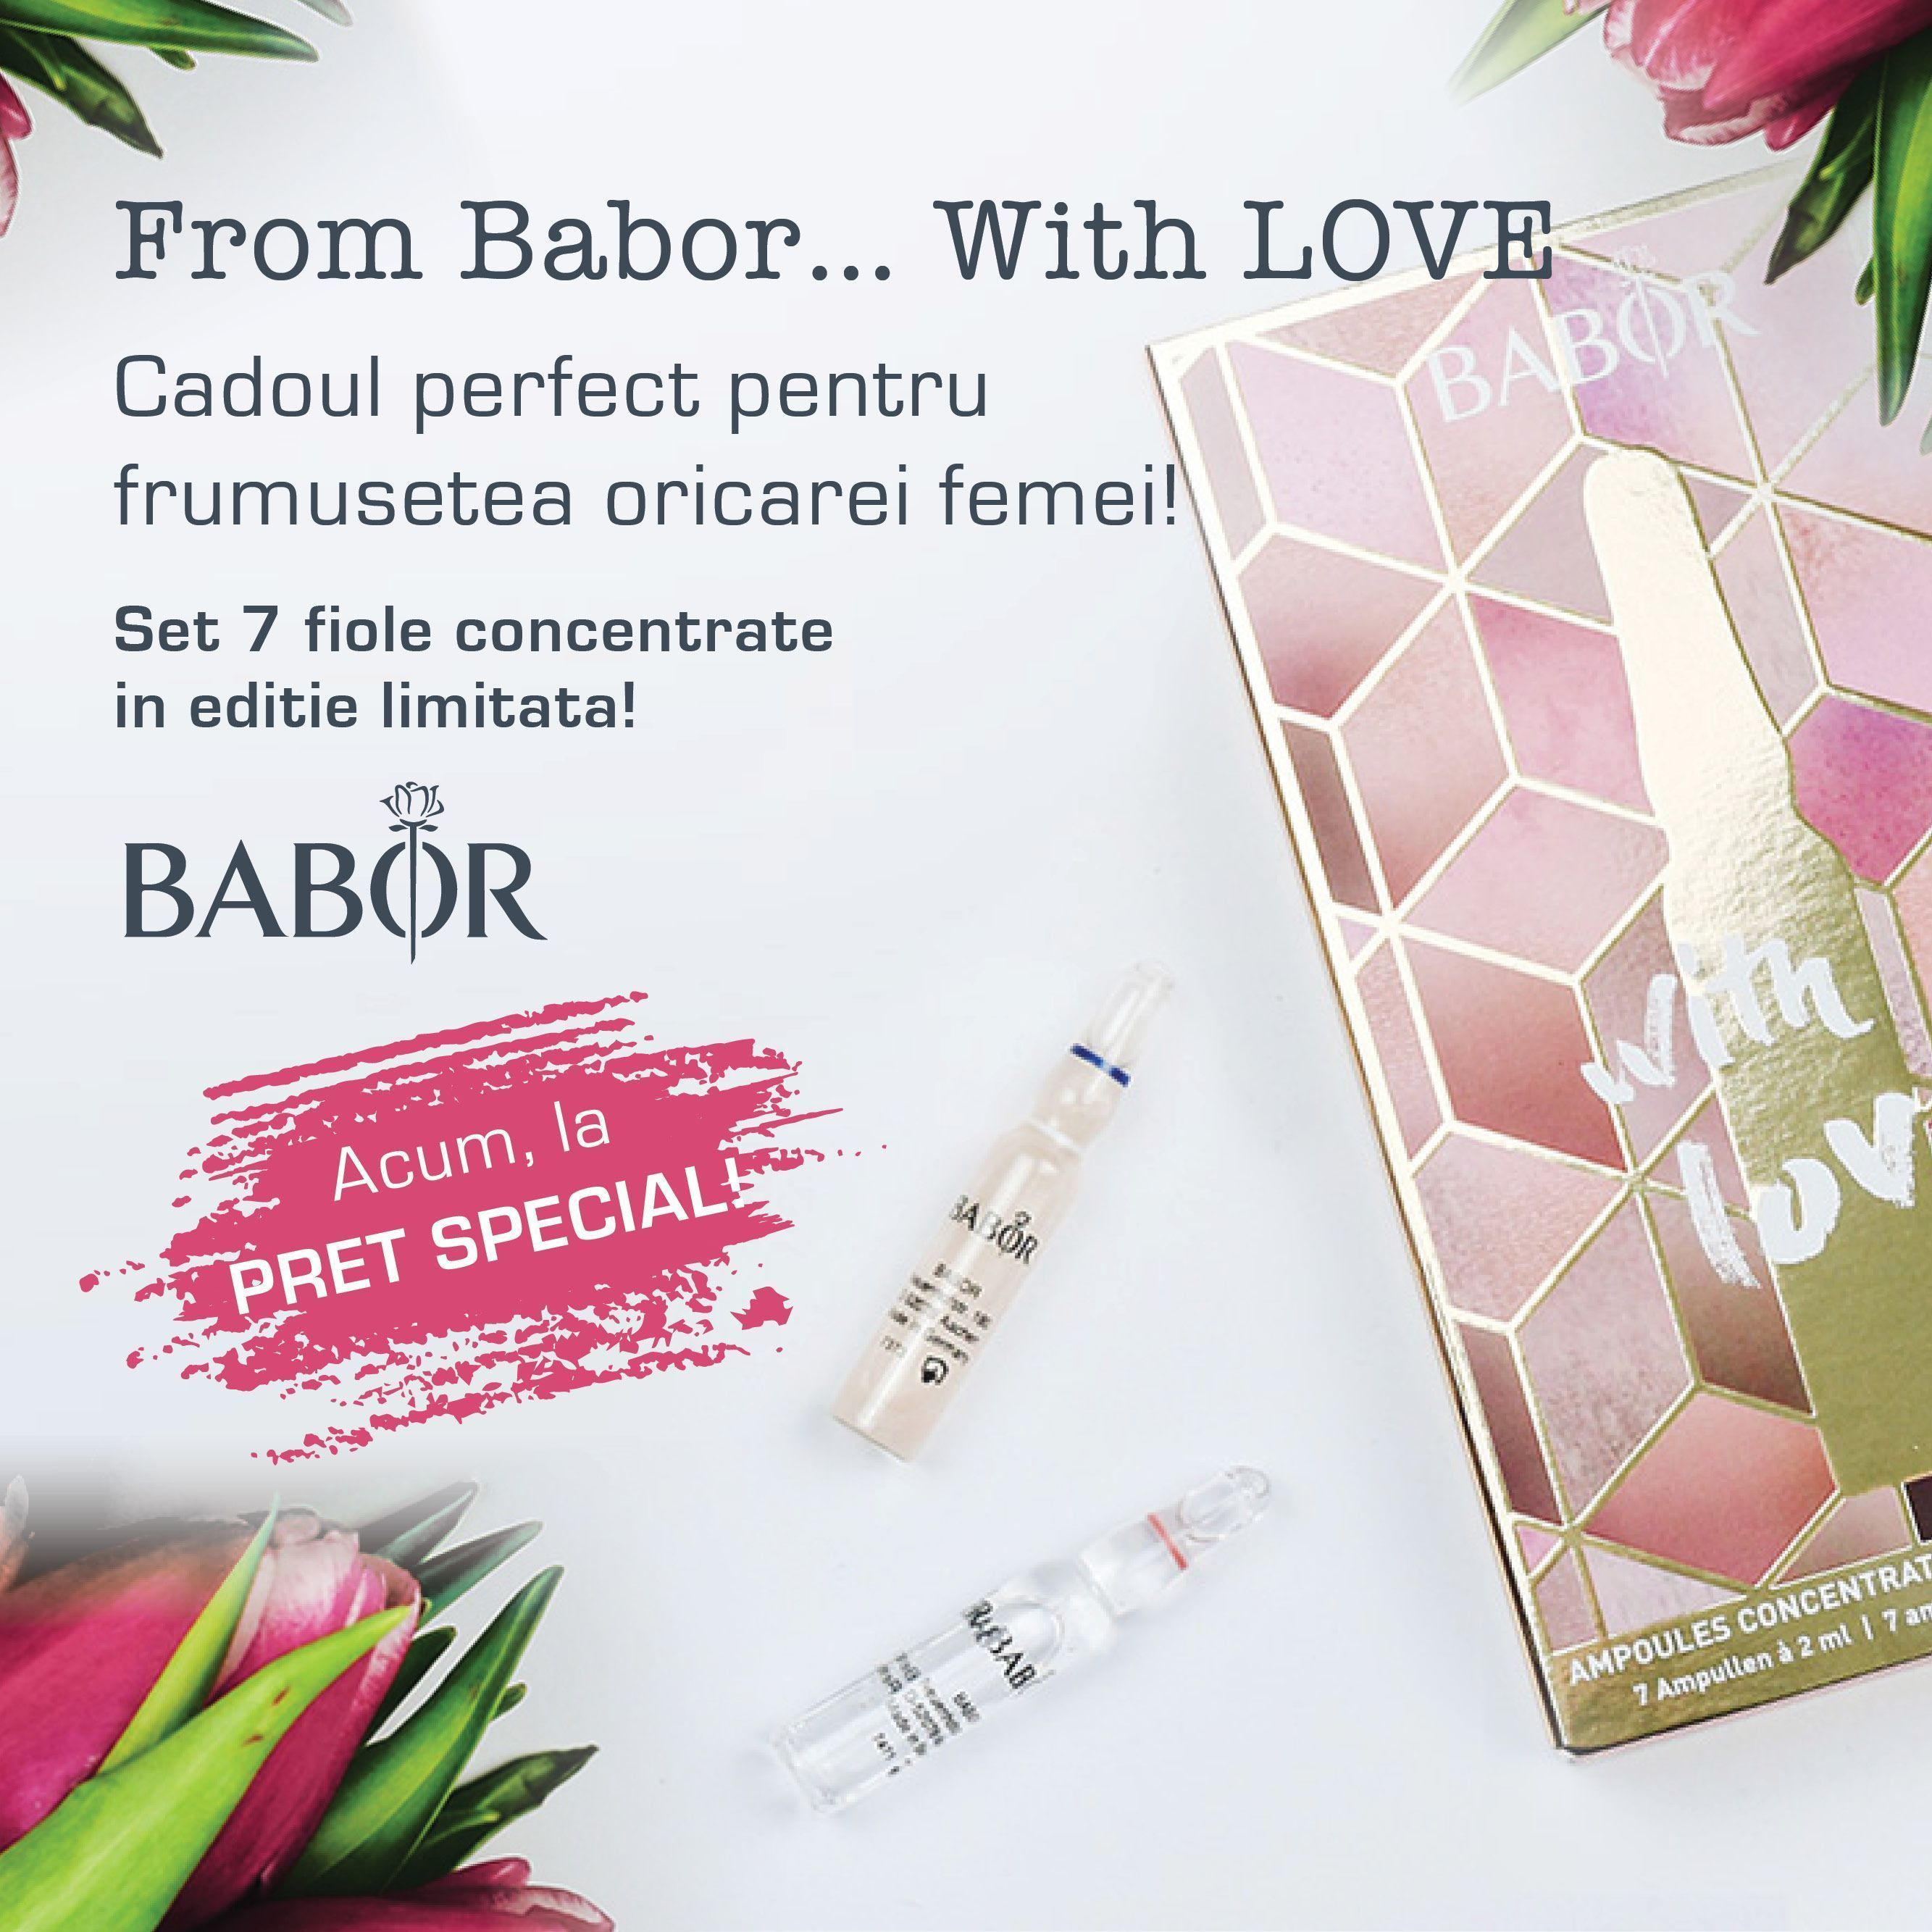 Babor with love